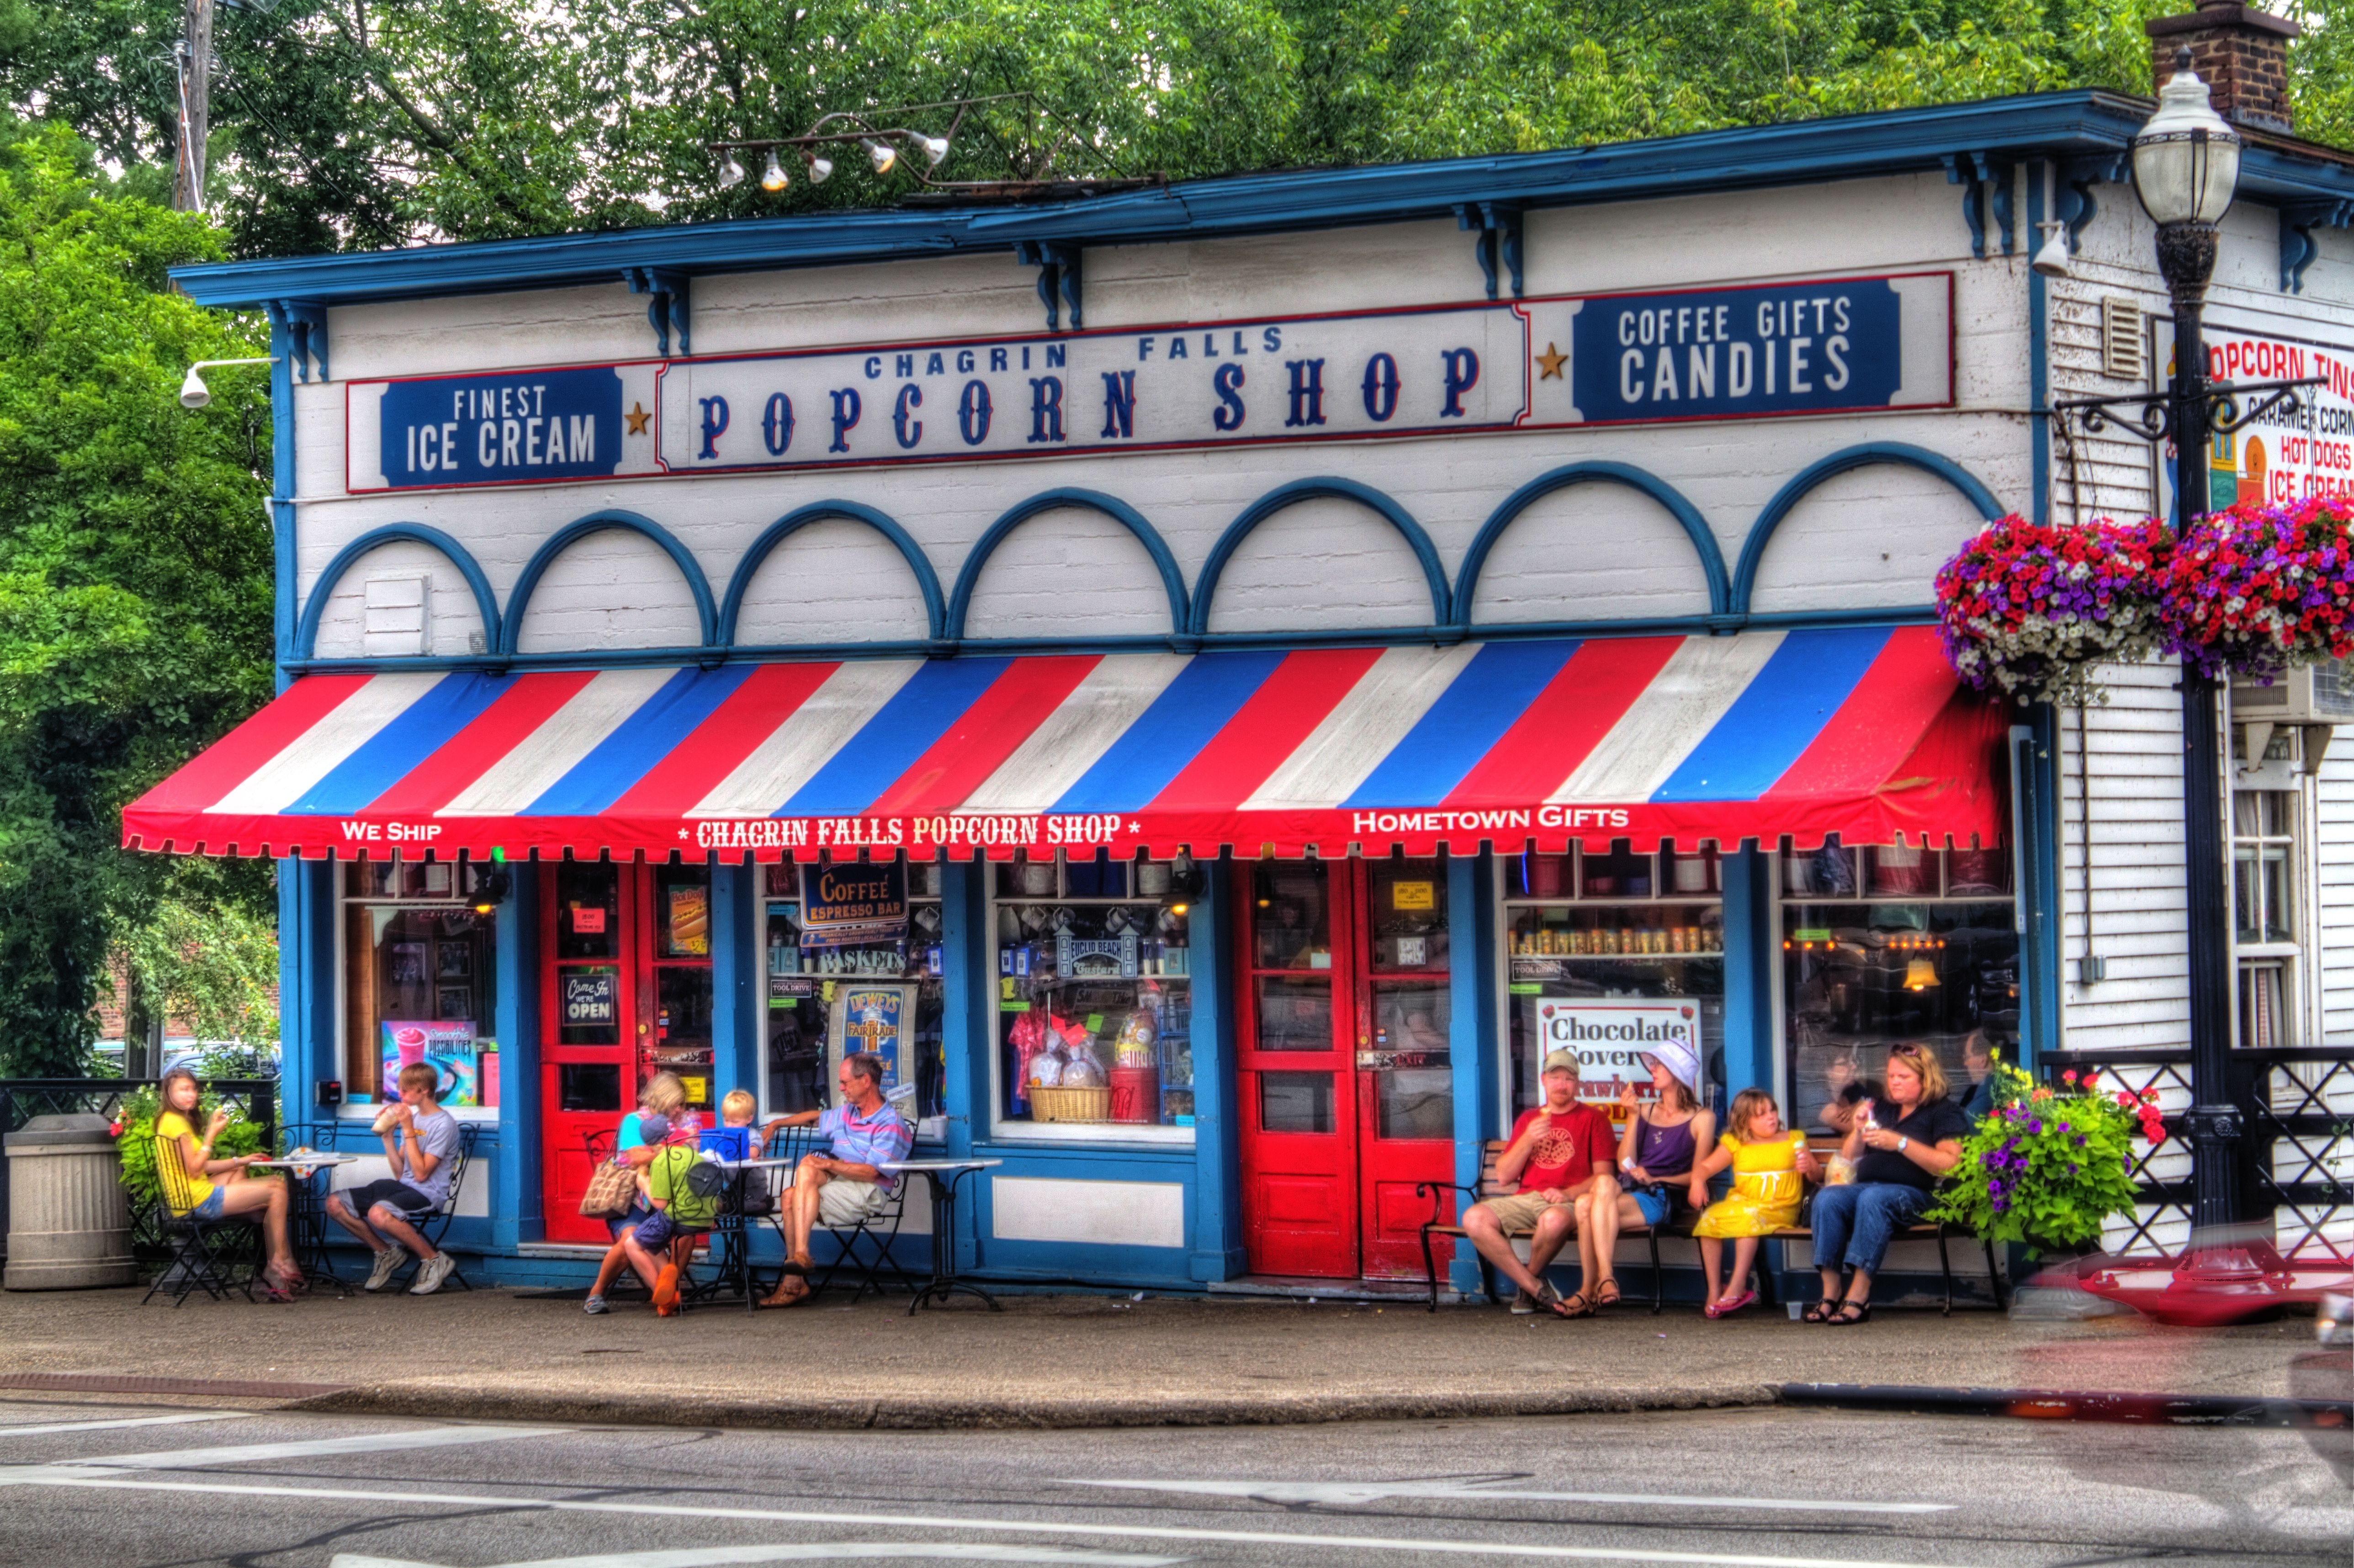 Chagrin Falls Popcorn Shop Chagrin Ohio Gregory I Stopped Here